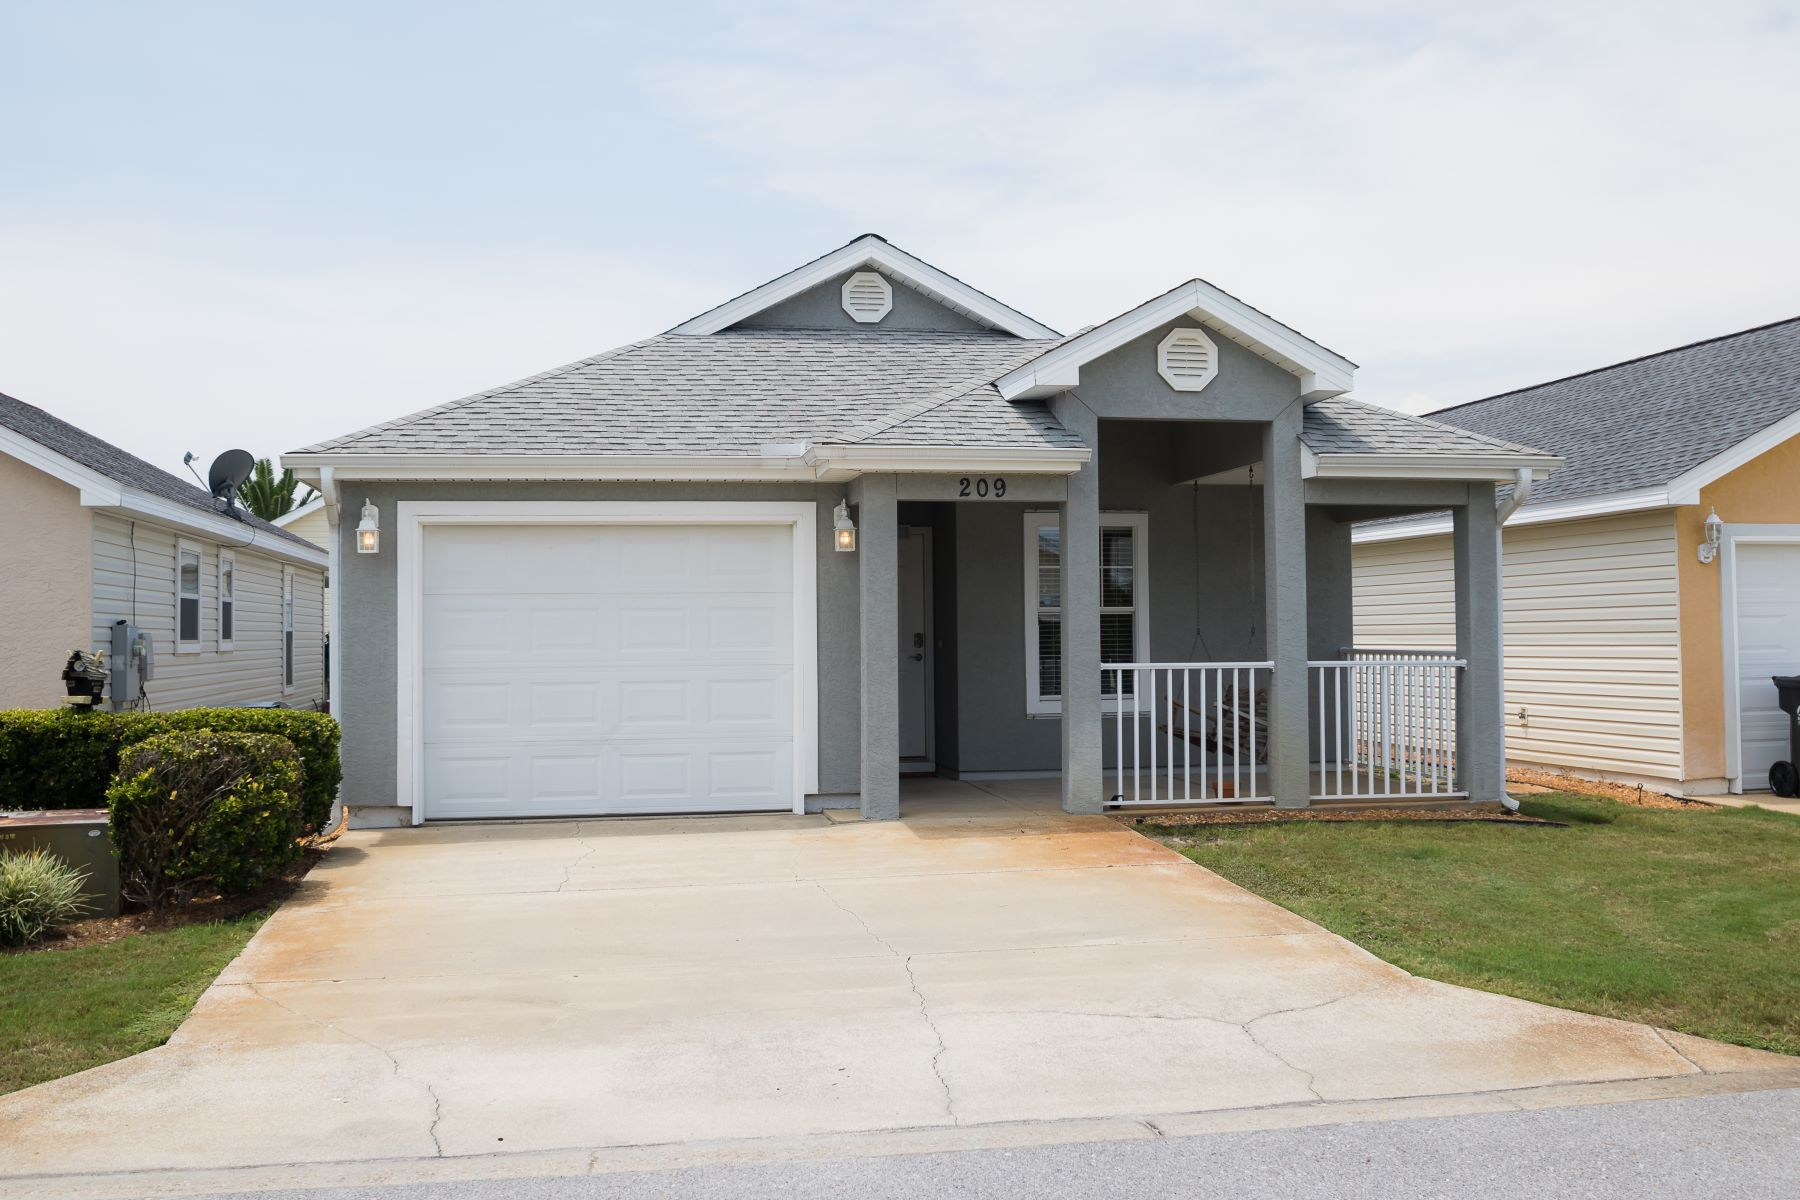 Single Family Homes for Sale at Palm Cove Beach Home Close to Pier Park 209 Seahorse Way, Panama City Beach, Florida 32407 United States